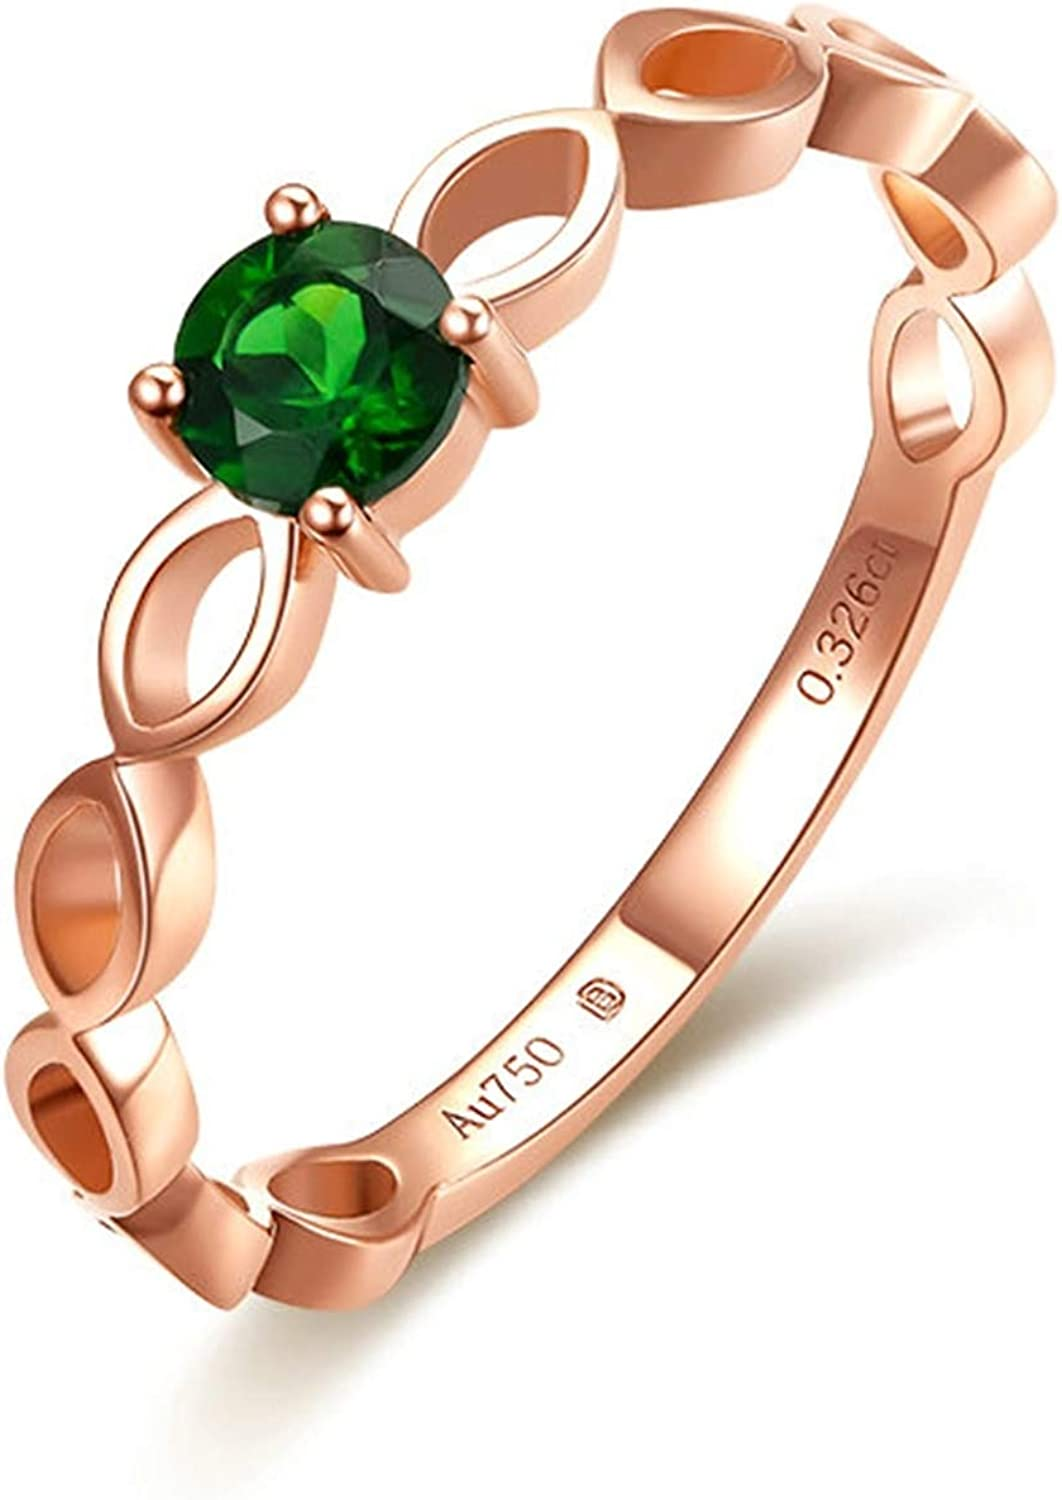 KnBoB Promise Ring Hollow Green 70% Milwaukee Mall OFF Outlet 18K Gold Diopside Wedding Rose